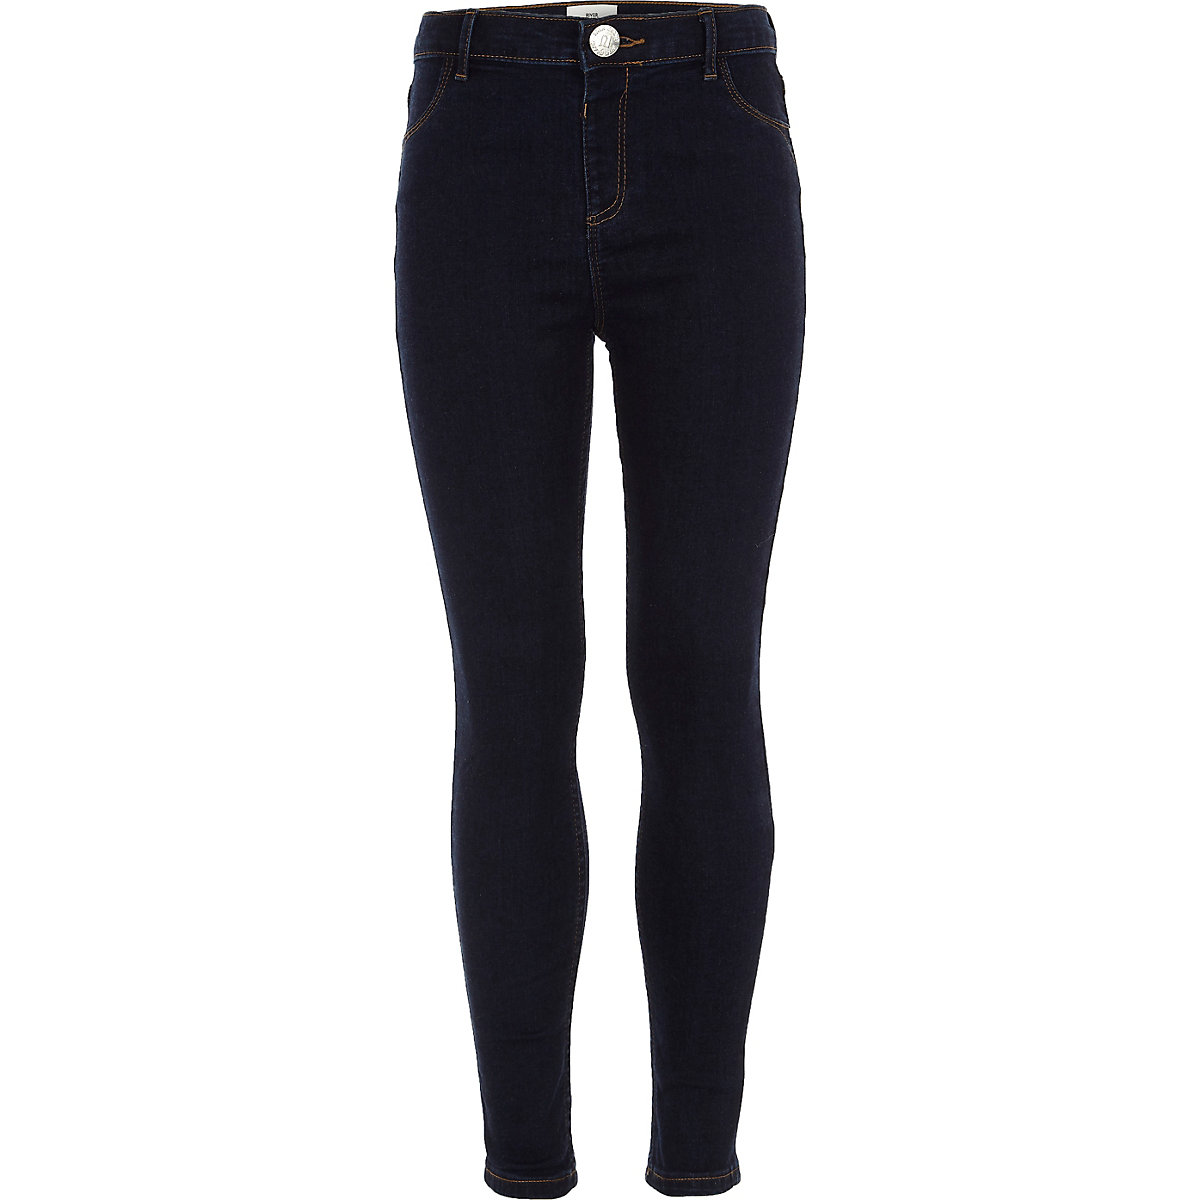 Dunkelblaue Molly Jeggings